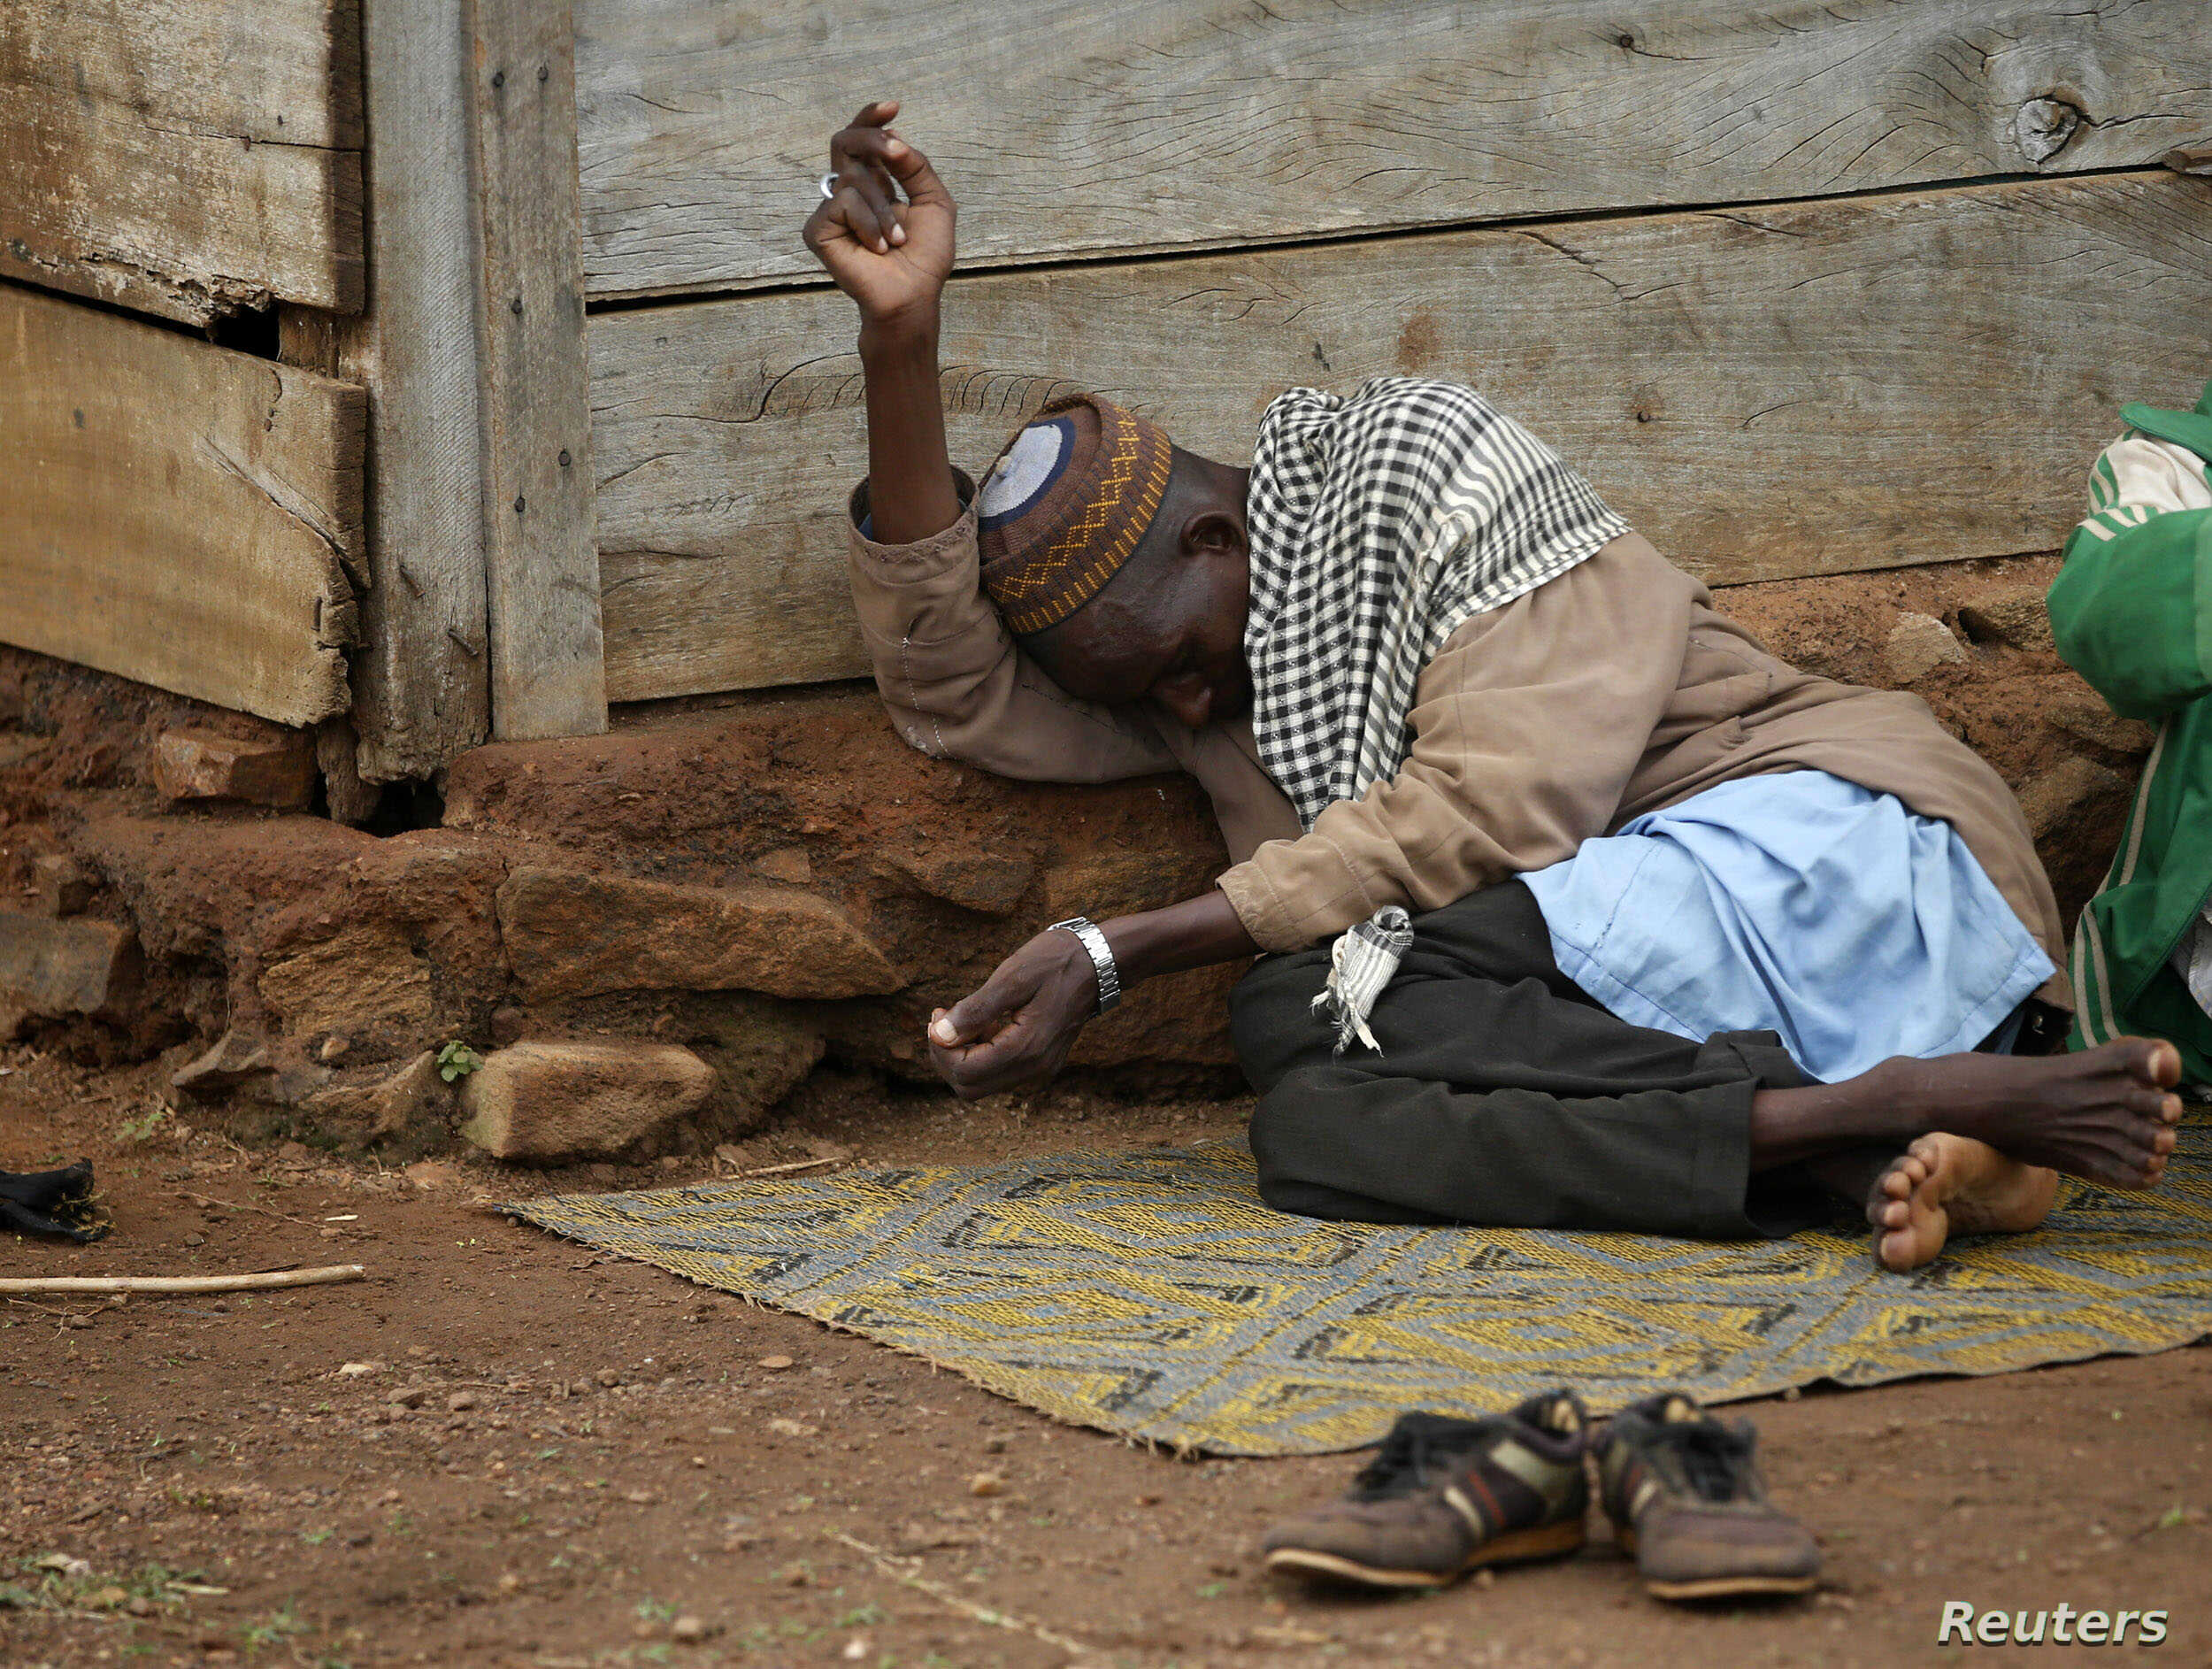 An internally displaced Muslim man lies in front of a house in the town of Boda, Central African Republic, April 15, 2014.